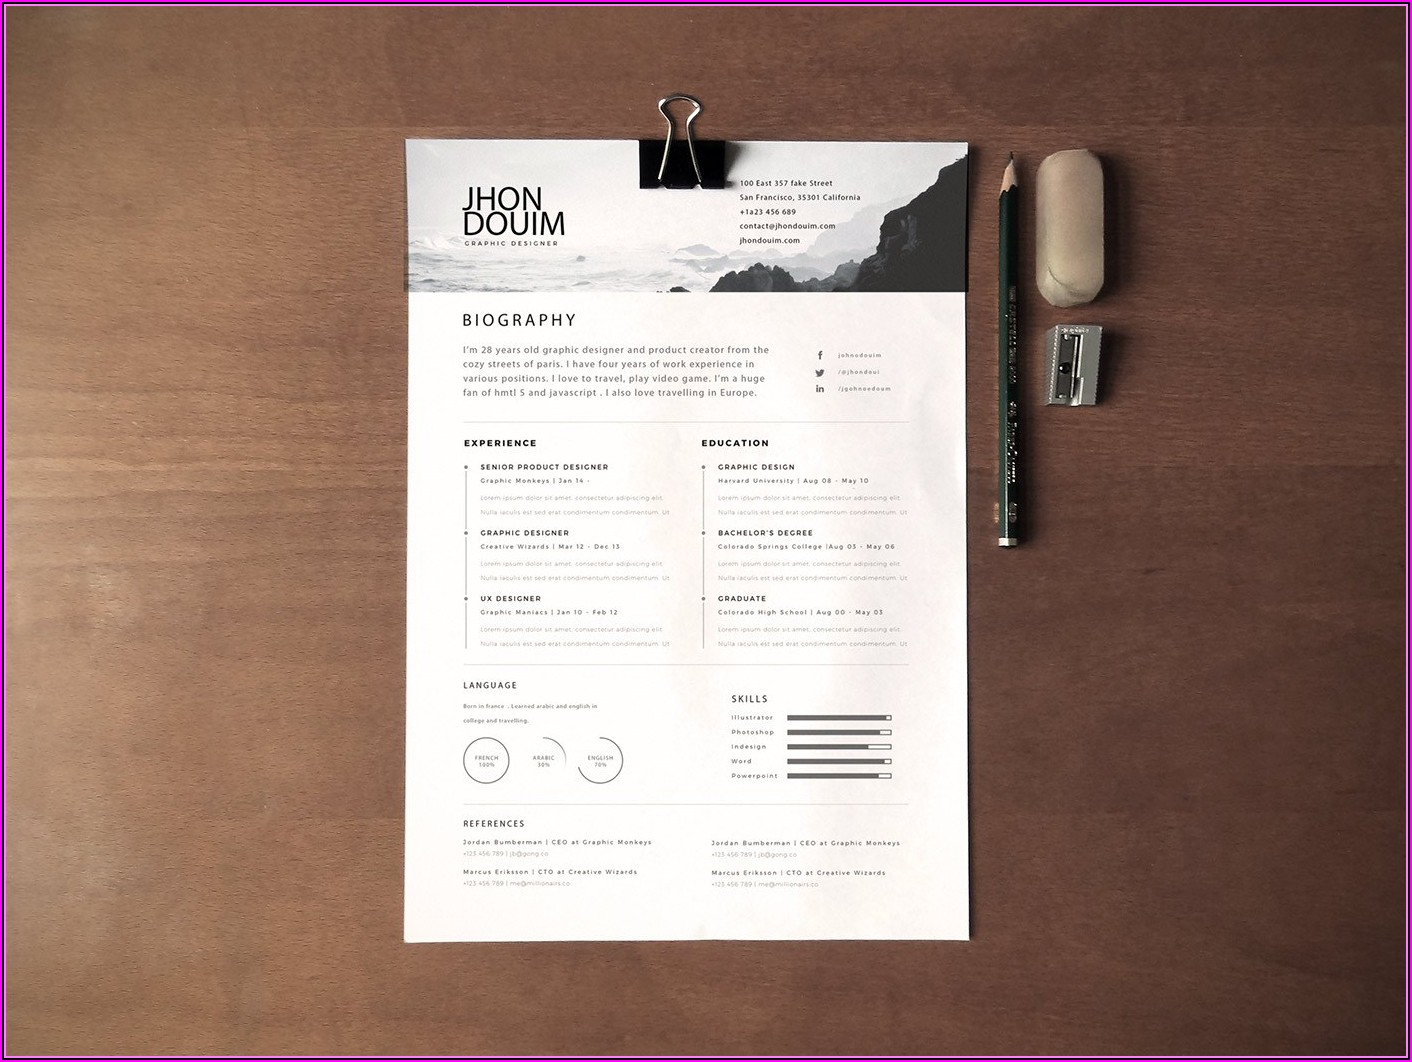 Monster Professional Resume Writing Service